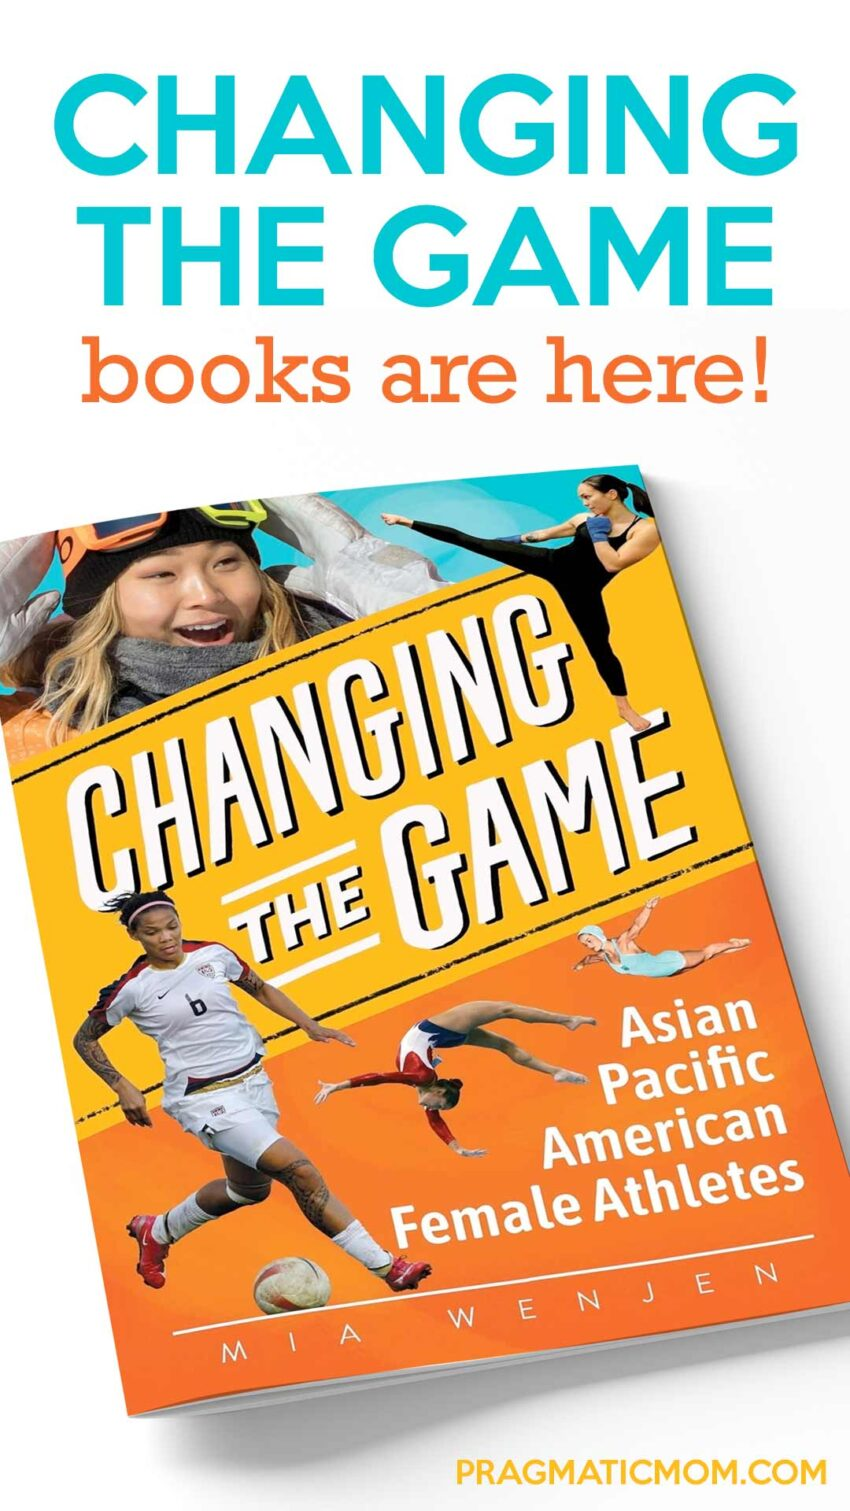 CHANGING THE GAME books are here!